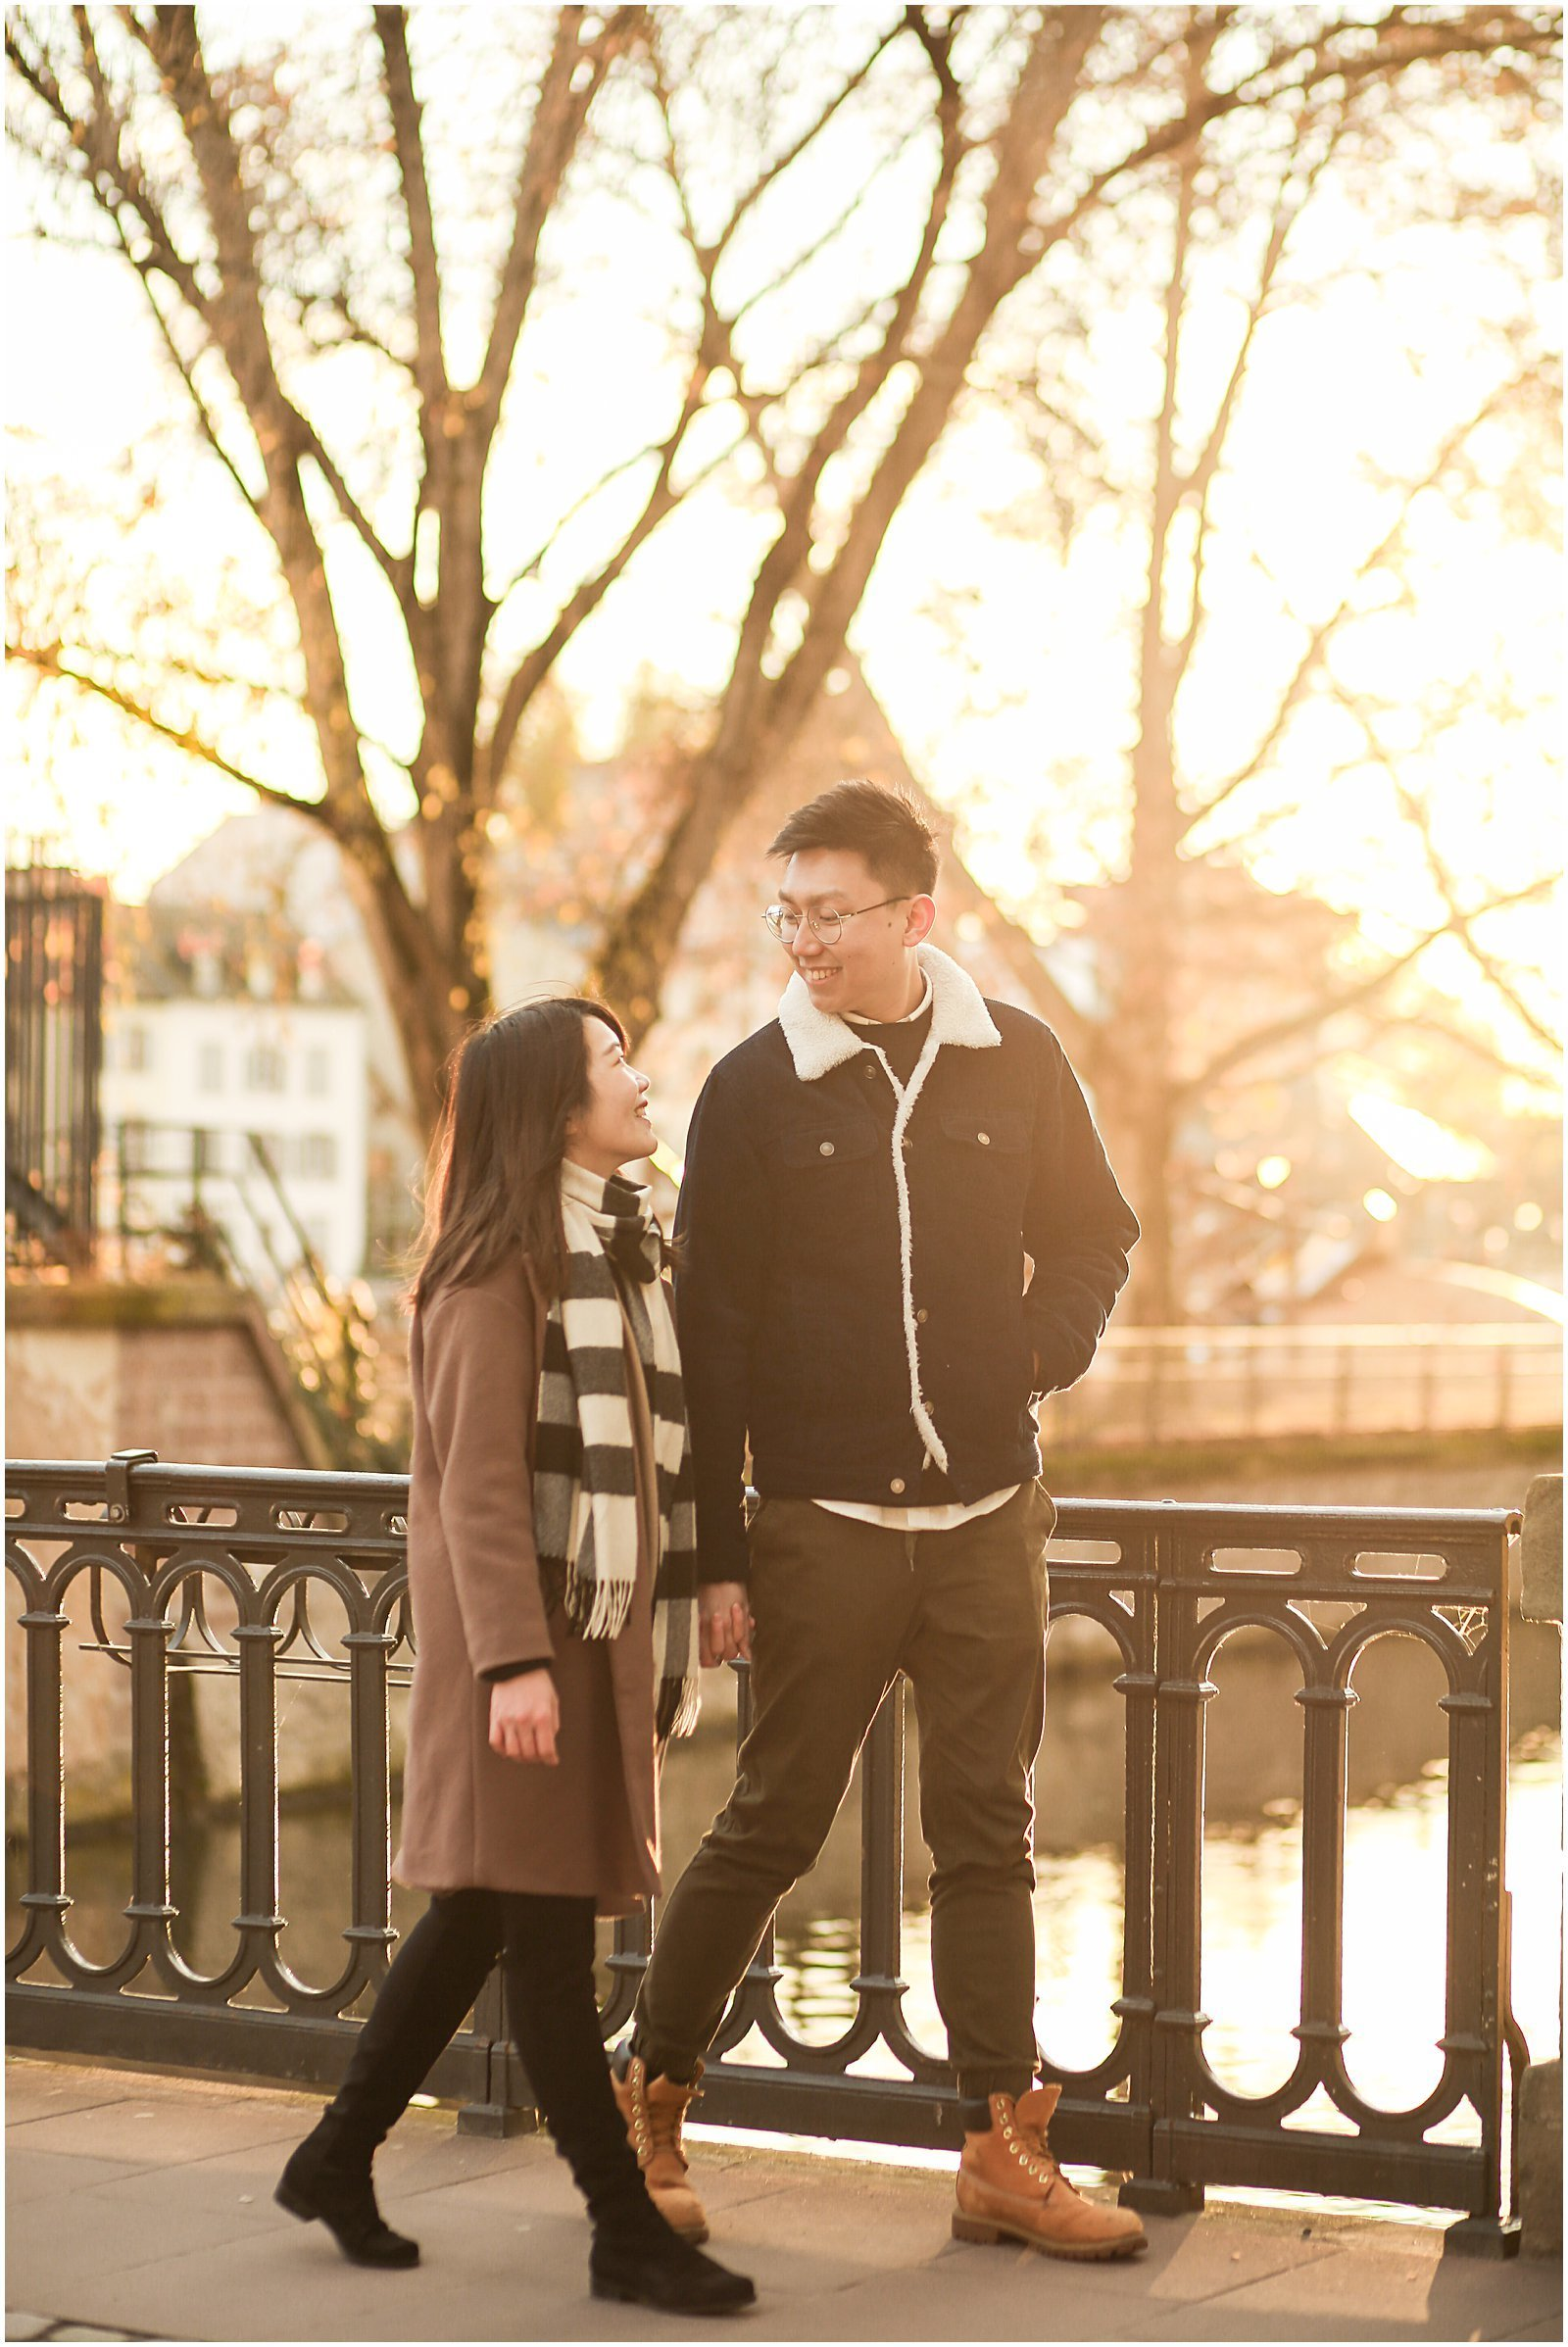 Proposal-Engagement-Photos-Strasbourg-France-Photographer-Helena-Woods_1416